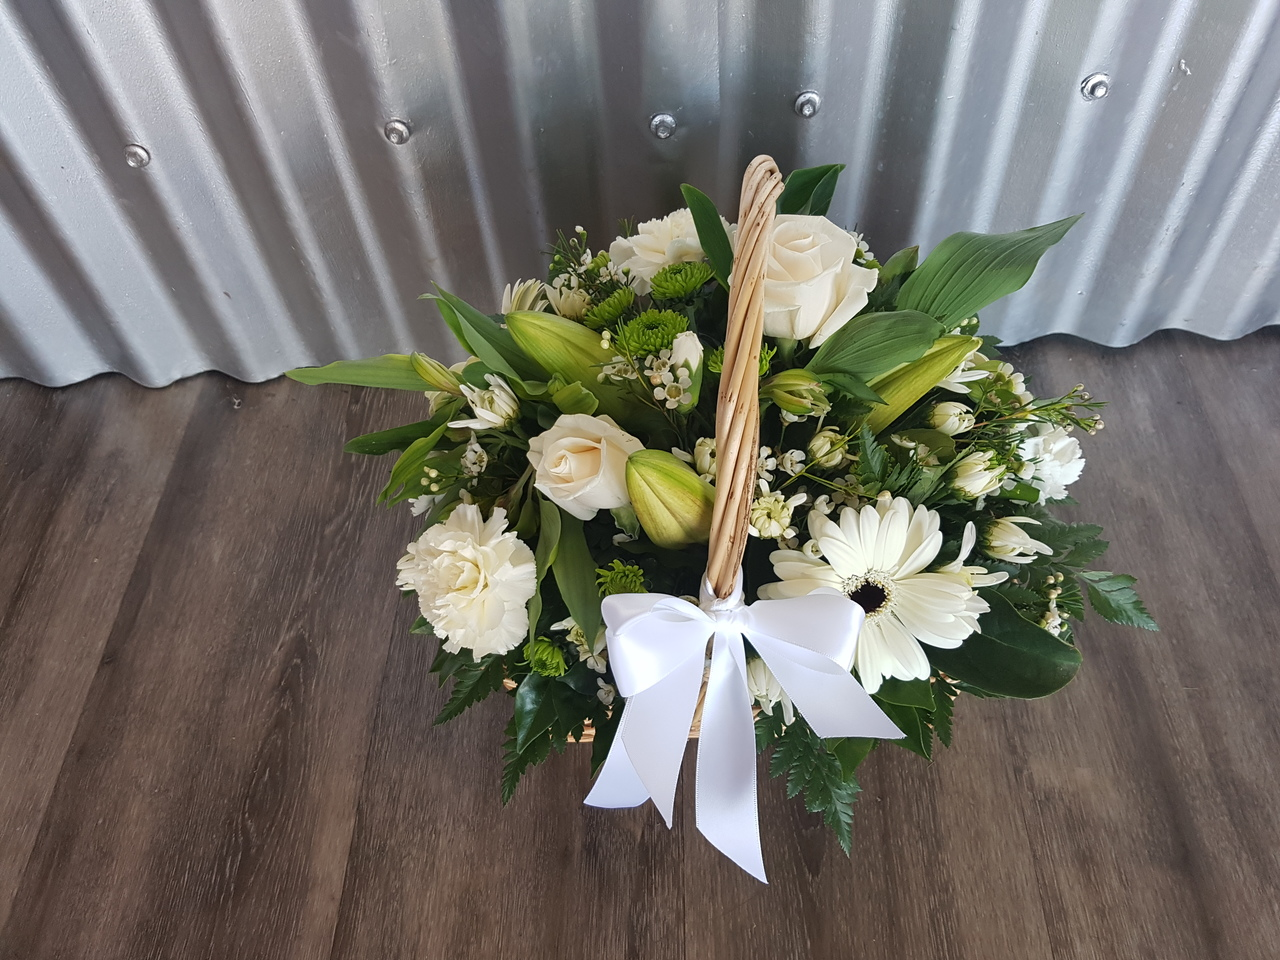 Comfort, a petite basket of mixed blooms in tones of white and green. This arrangement is suitable for delivery to home or funeral service.